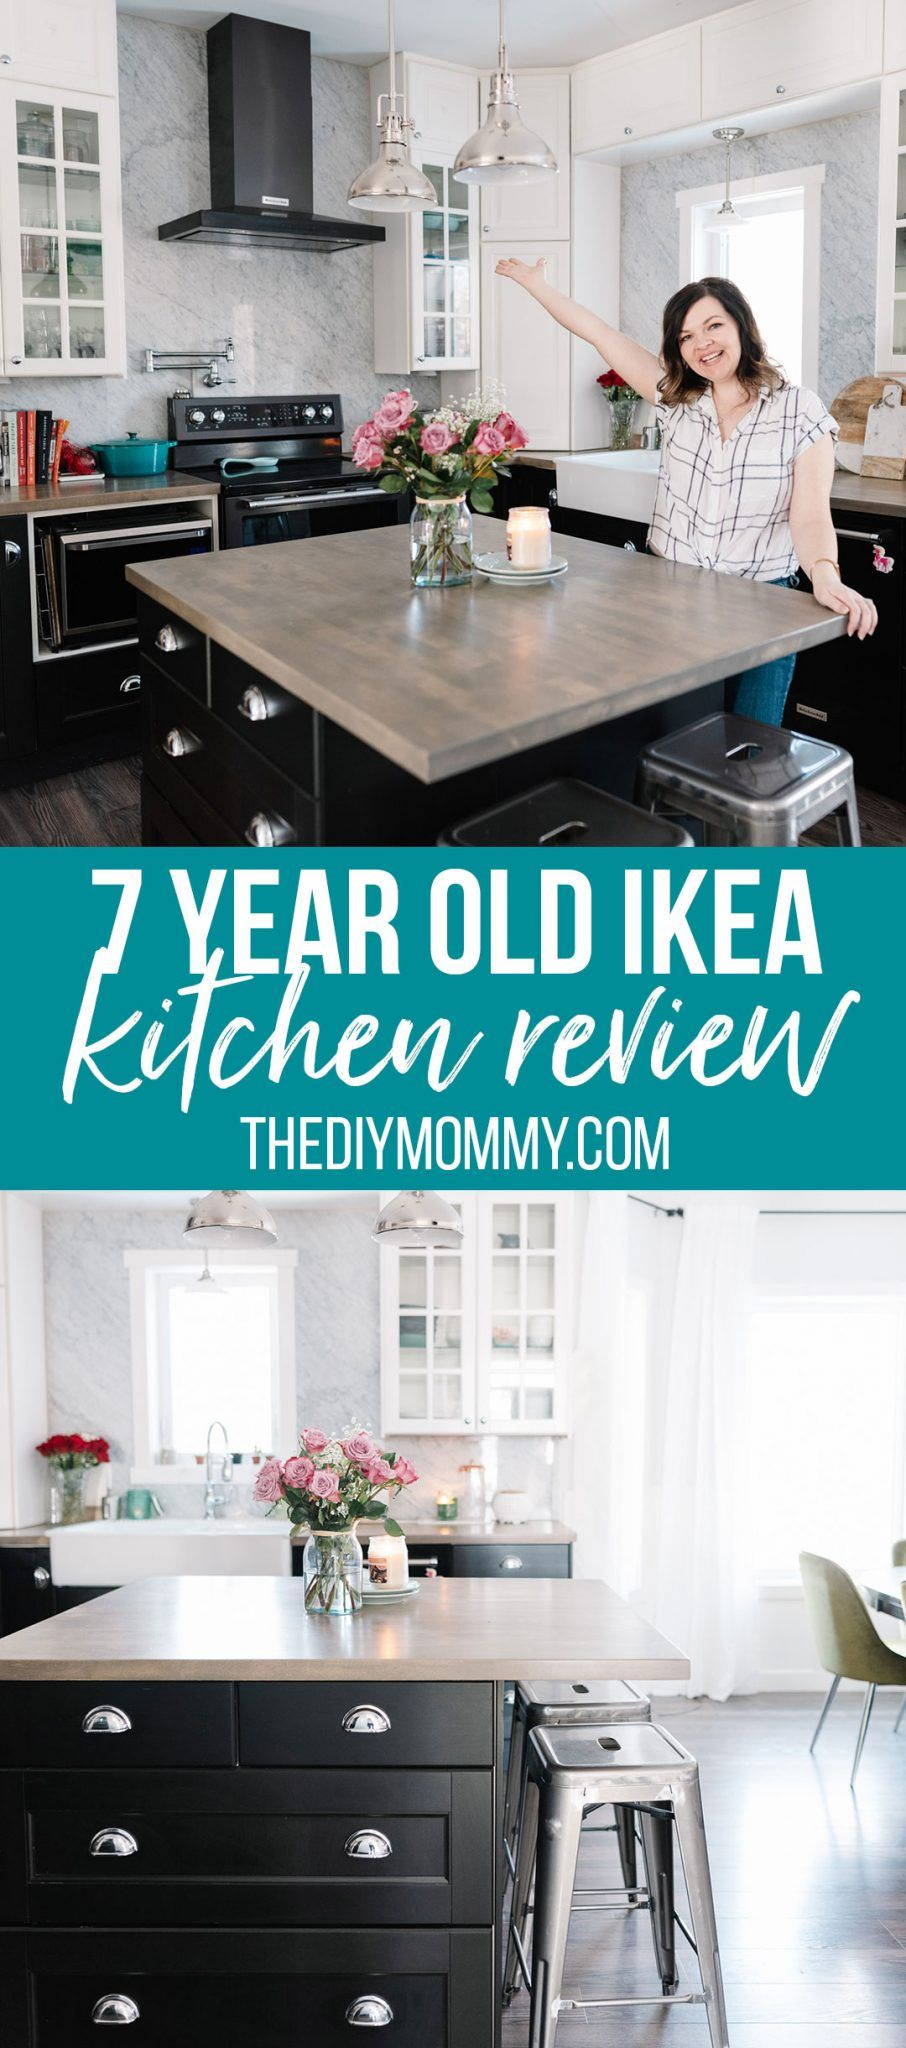 Ikea Kitchen Review 7 Years Later The Diy Mommy In 2020 Ikea Kitchen Reviews Ikea Kitchen Kitchen Inspiration Design